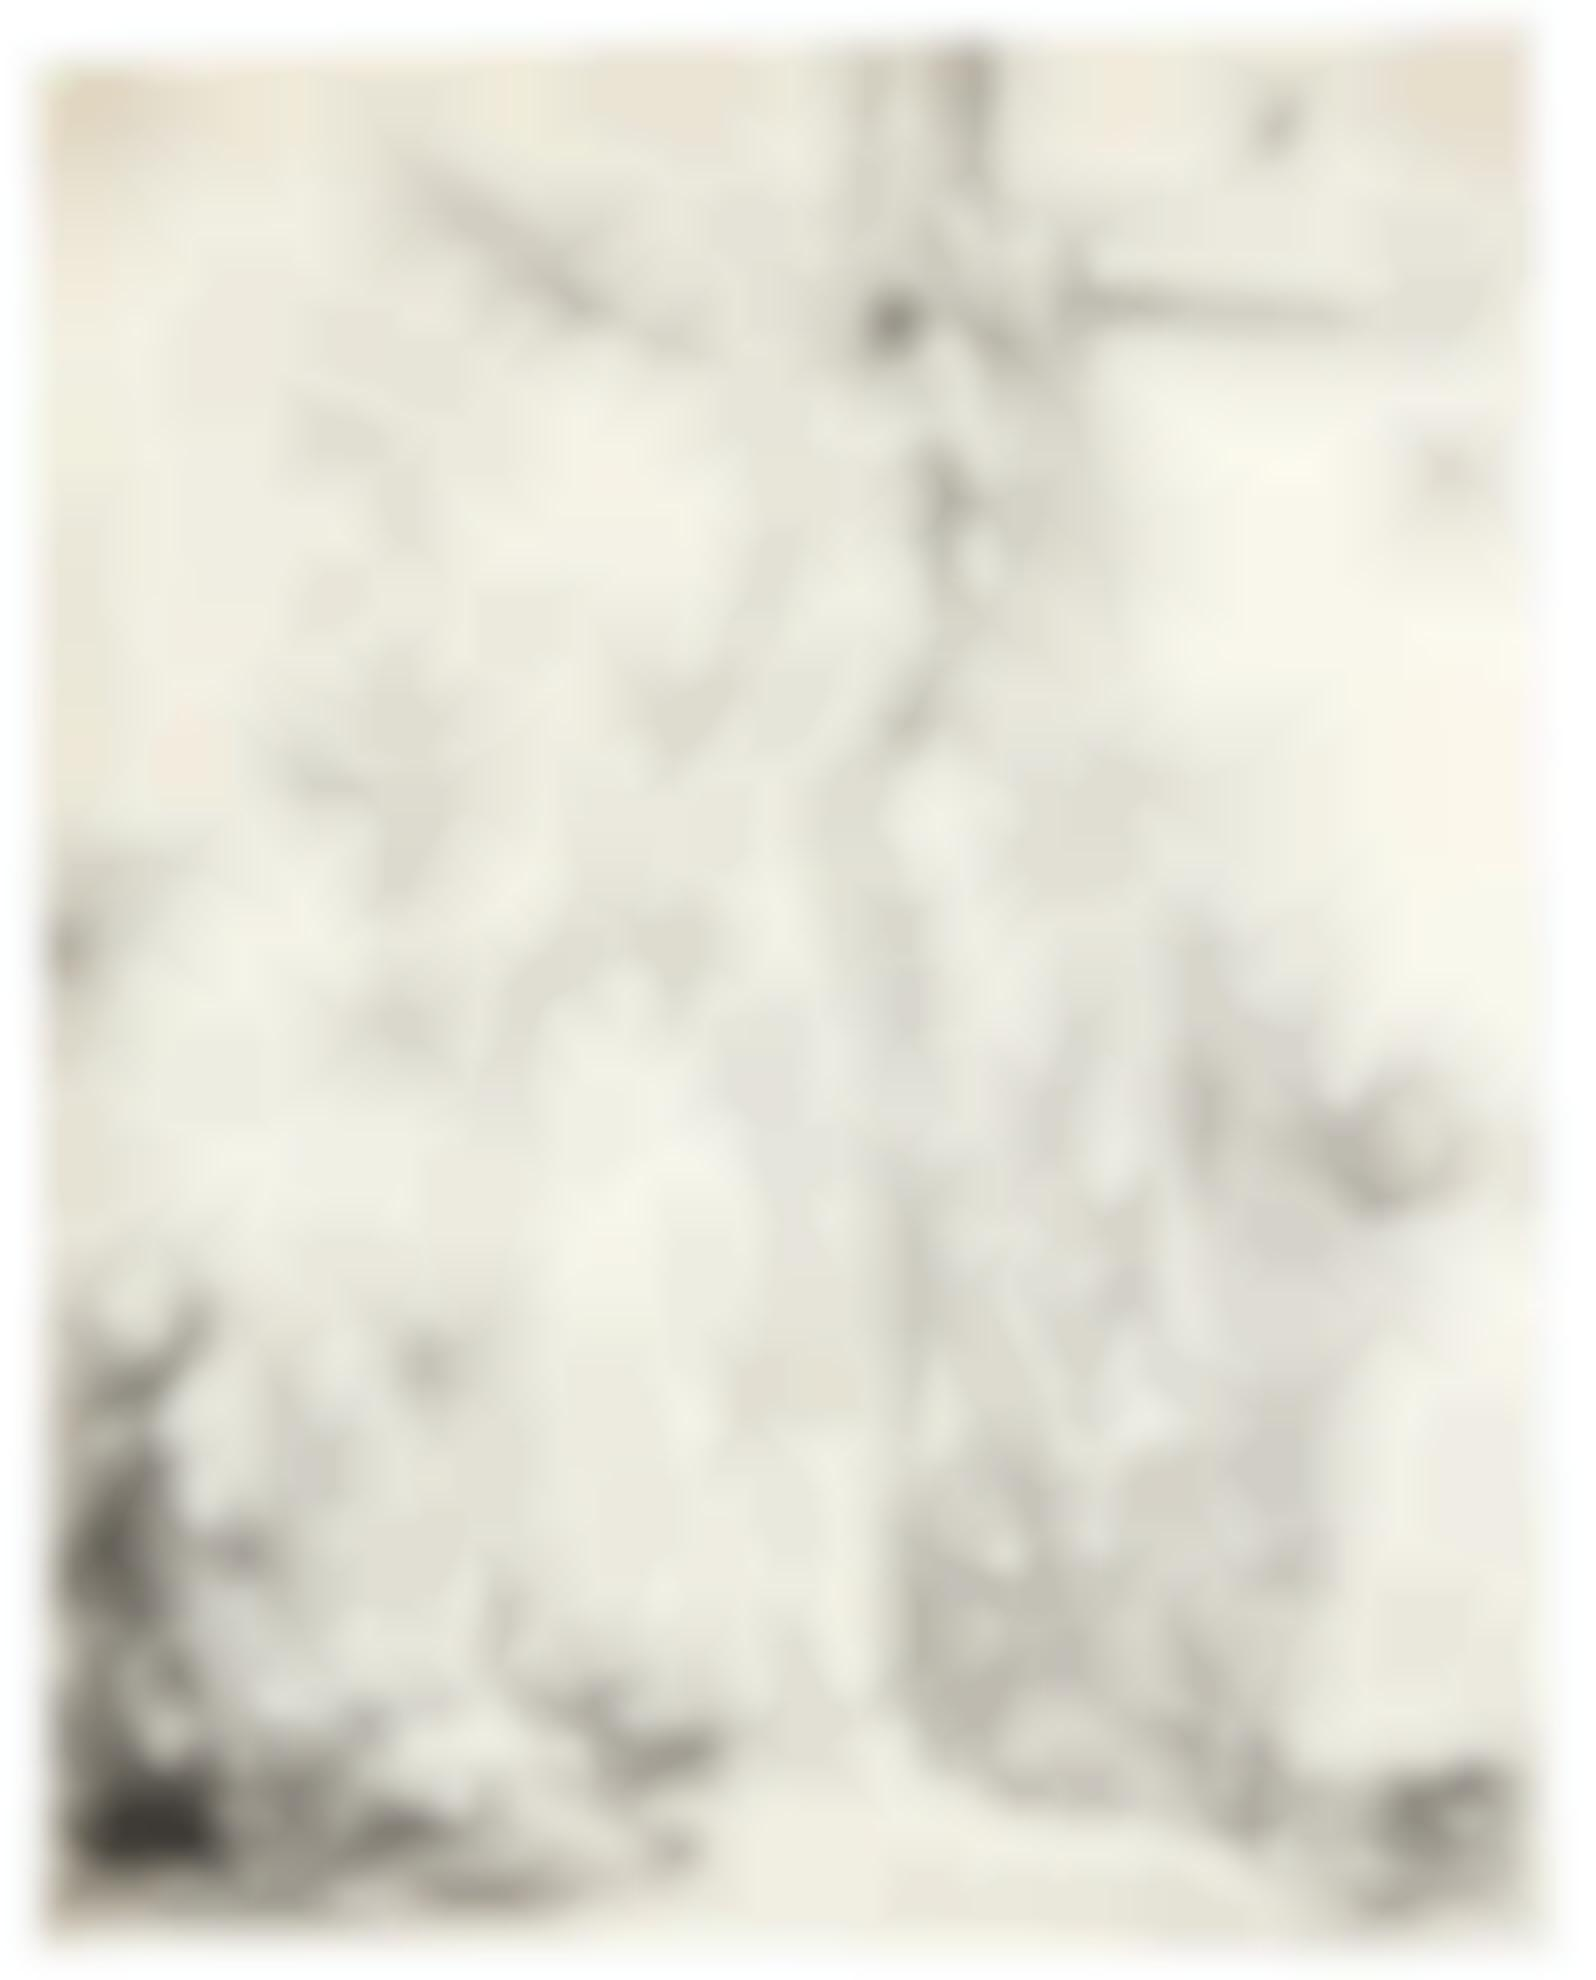 Rembrandt van Rijn-The Descent From The Cross: A Sketch (B., Holl. 82; New Holl. 204; H. 199)-1642